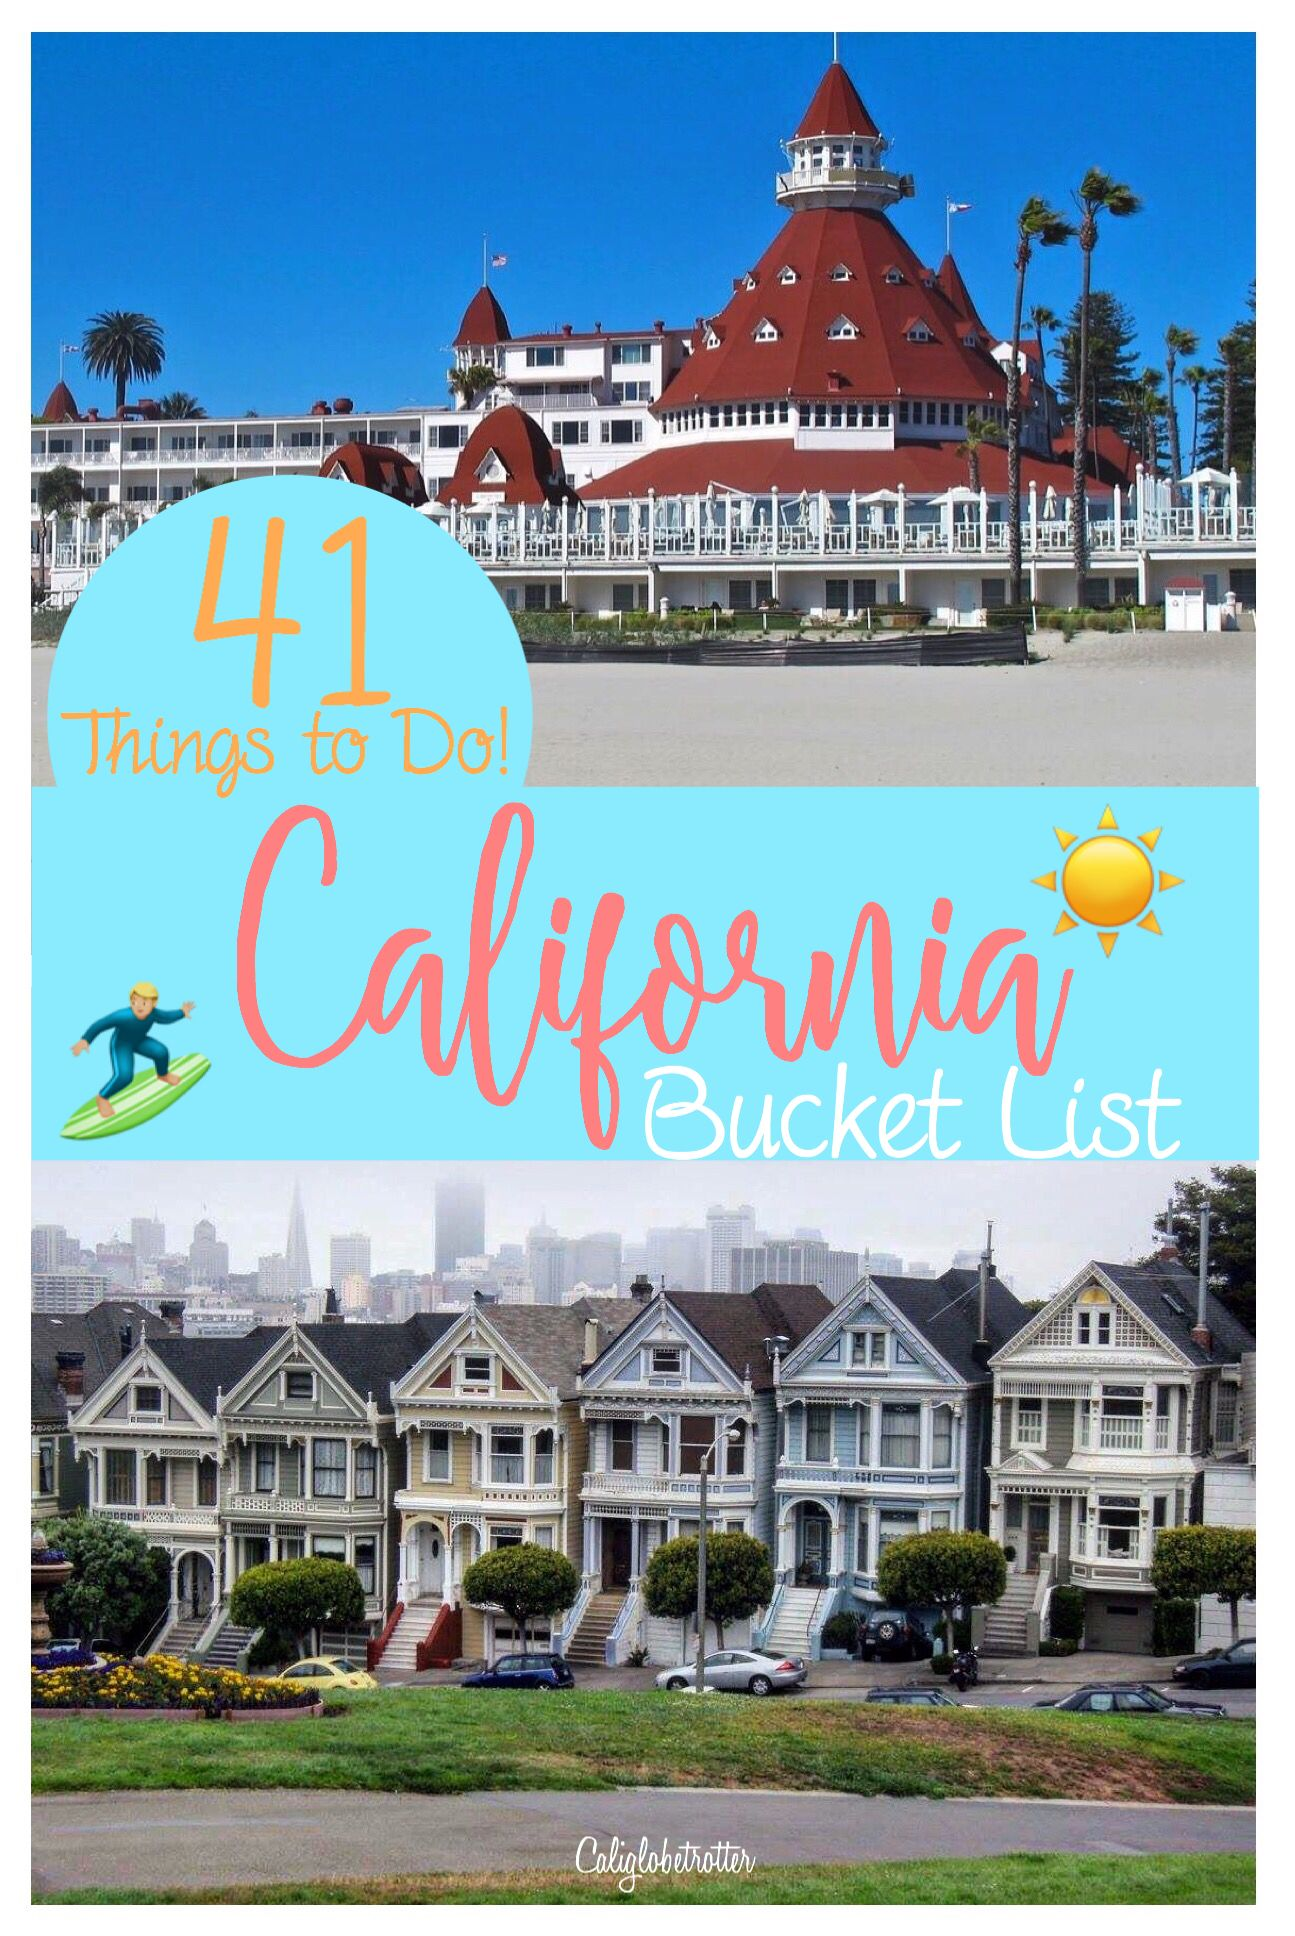 california bucket list: top 41 things to do! - california